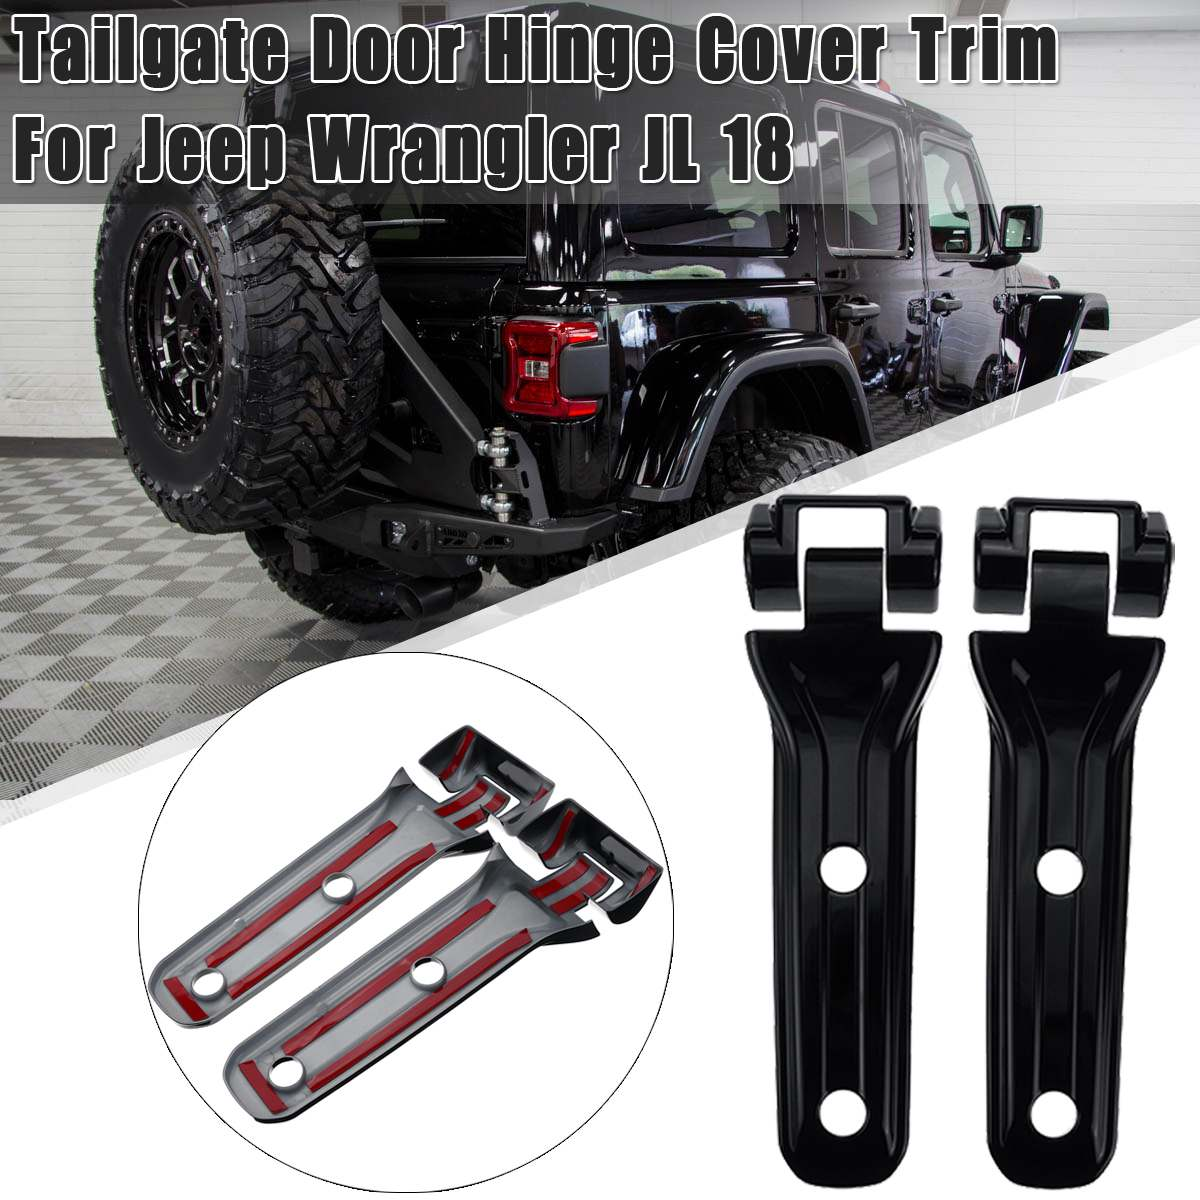 Car Exterior Rear Spare Tire Tailgate Door Hinge Cover Trims Decoration Stickers  For Jeep for Wrangler JL 2018 2019 2019 jeep wrangler front